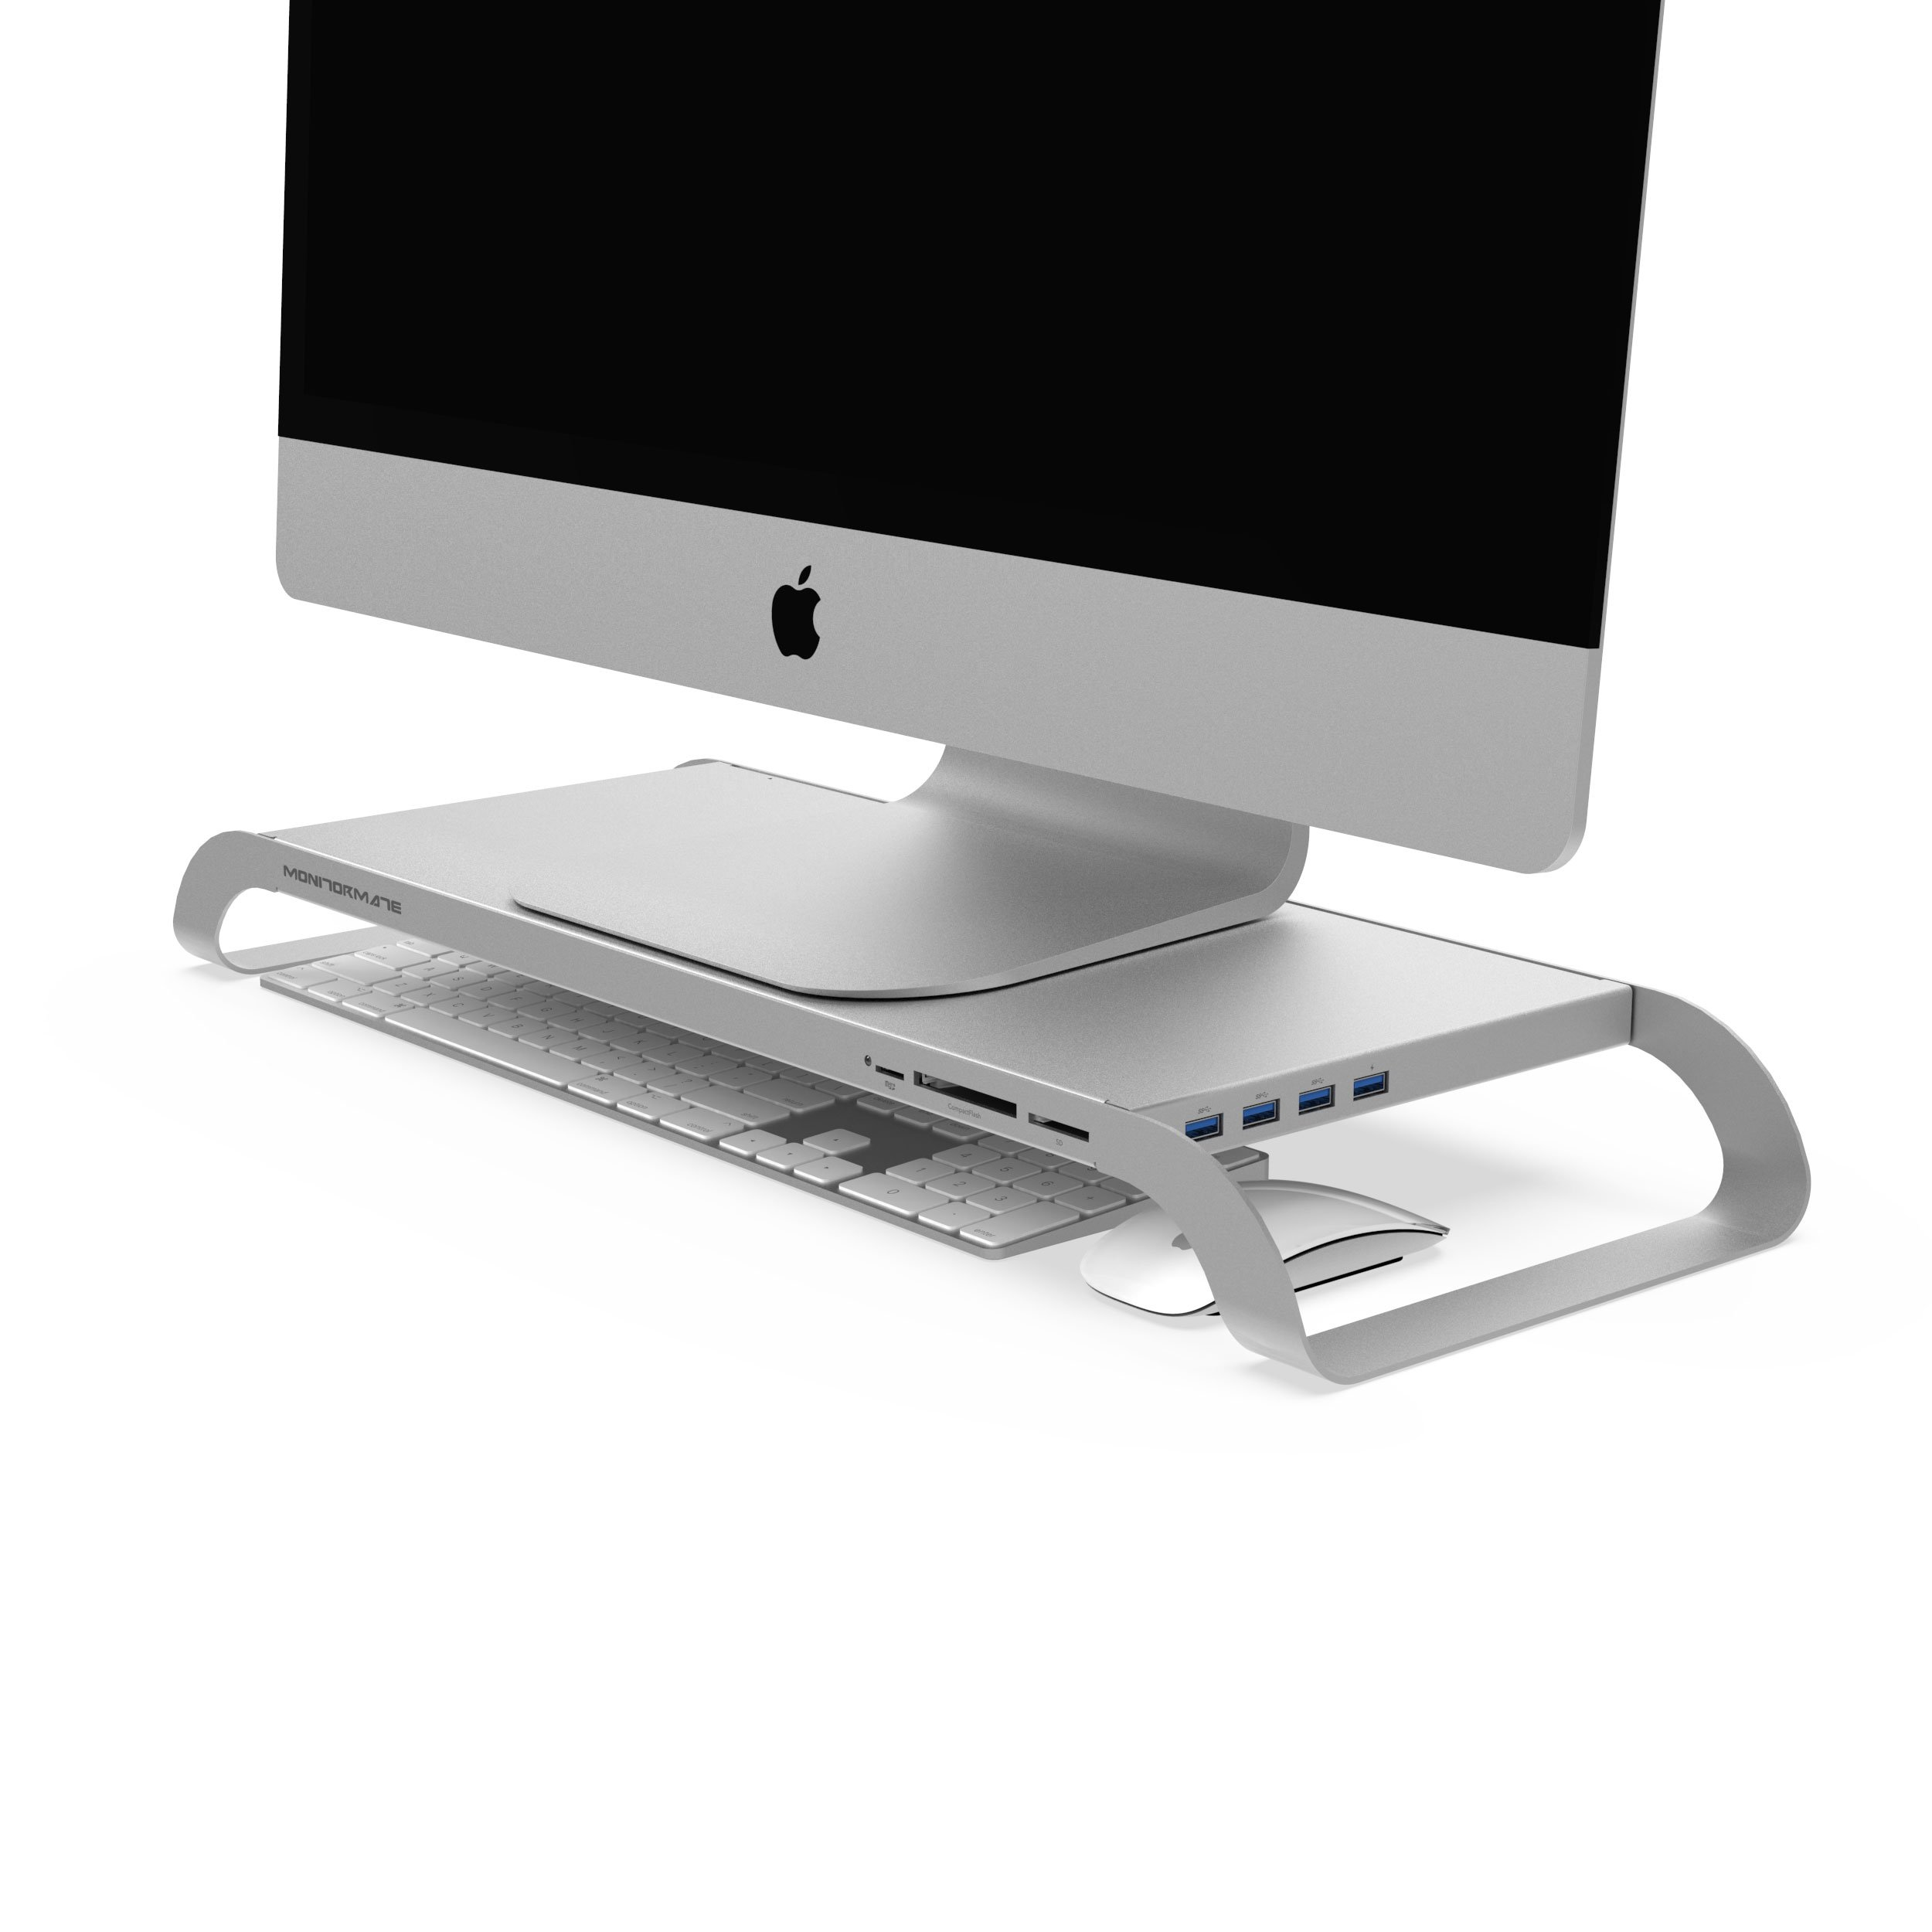 MonitorMate ProStation Aluminum Monitor Stand with USB3.0 hub, Card-Reader, Fast Charger, Hard Drive storage and external power supply(Silver)